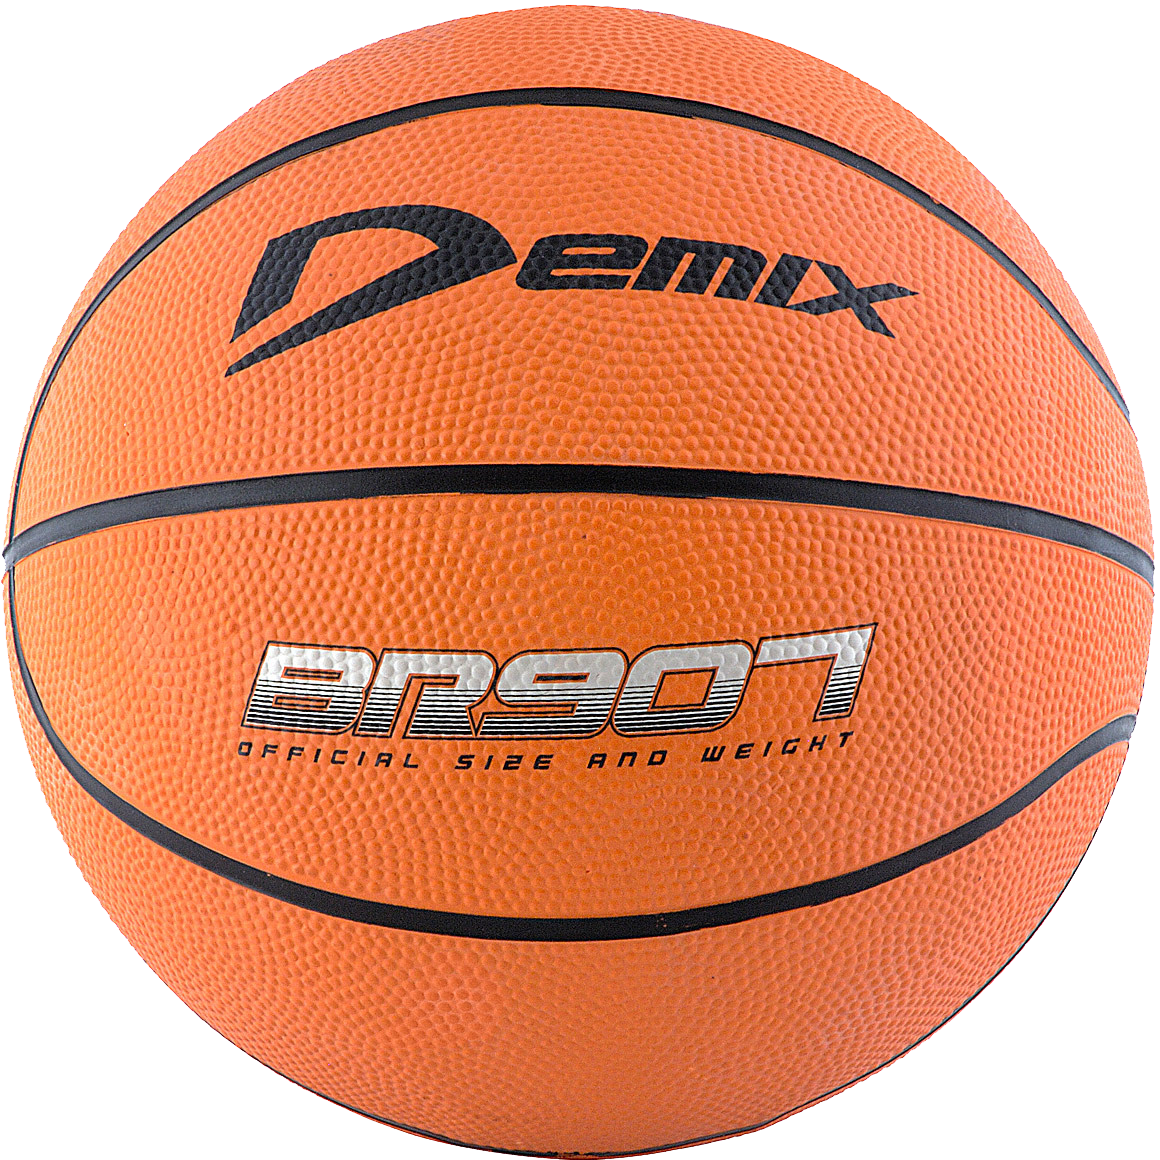 Basketball ball PNG images, free download.